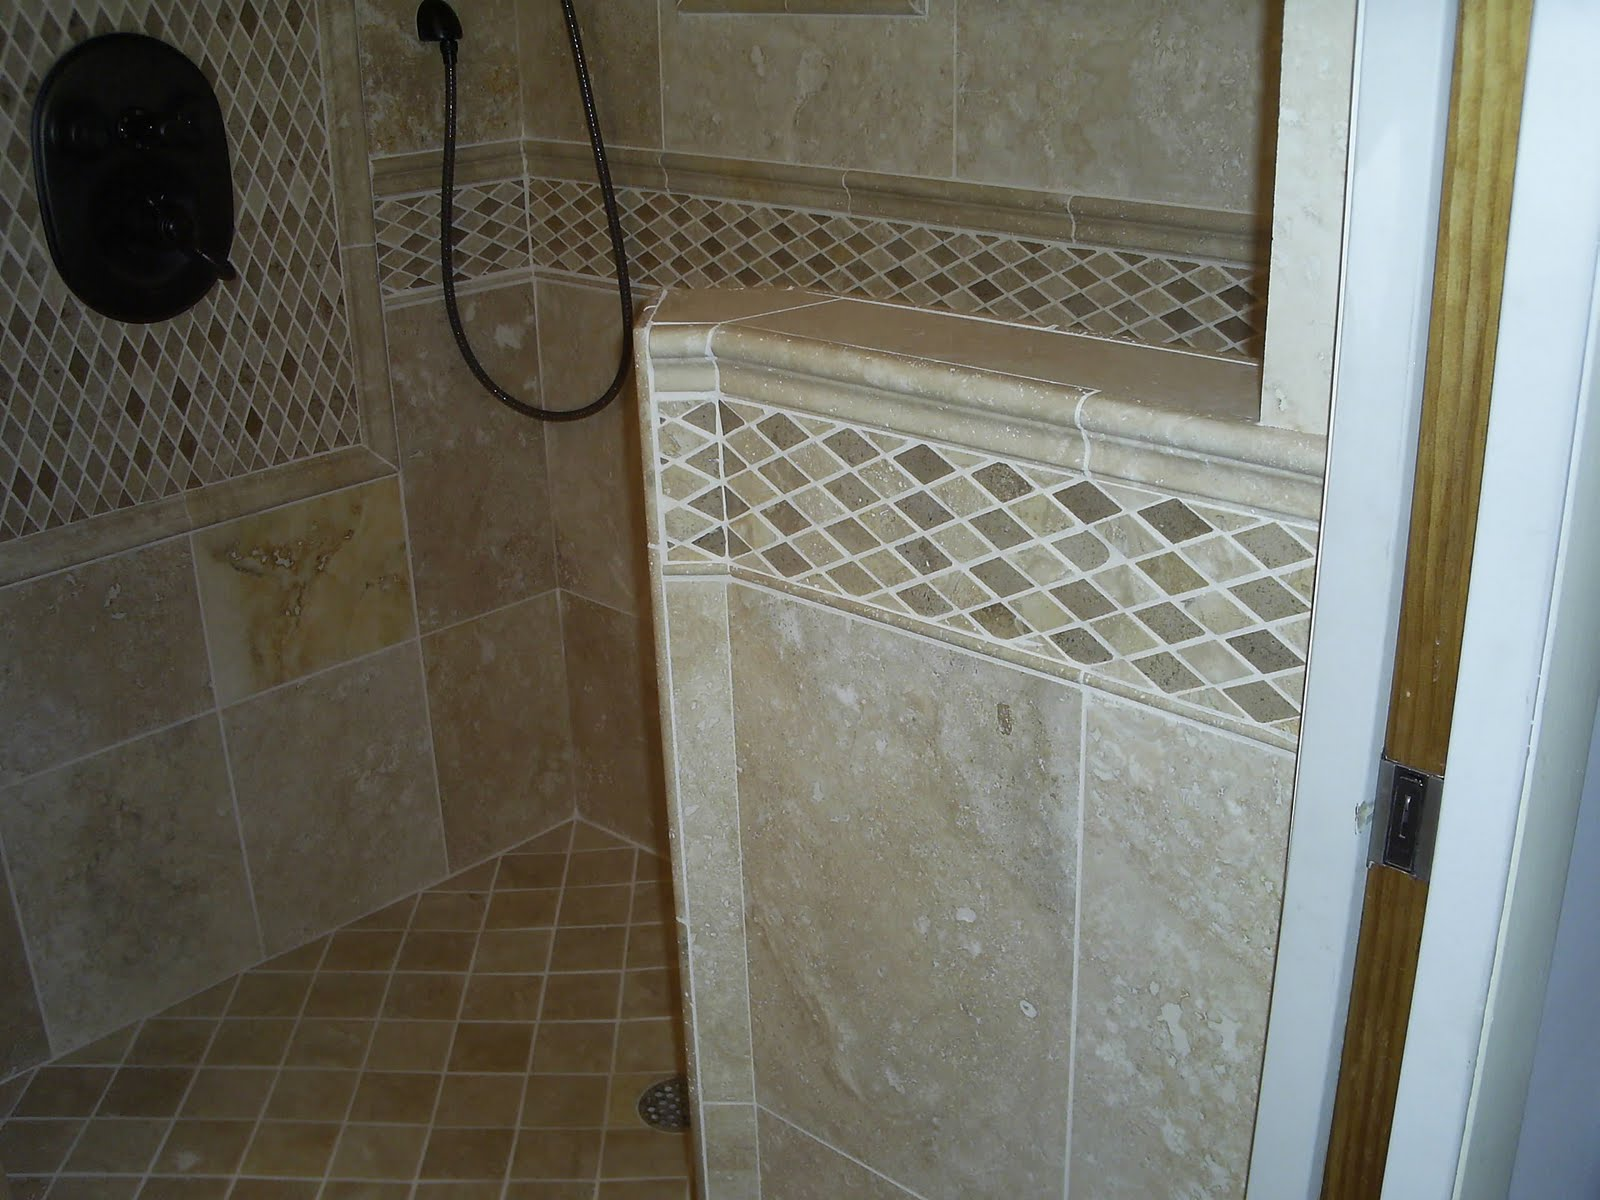 Maloney Tile and Marble: Travertine shower install in ...